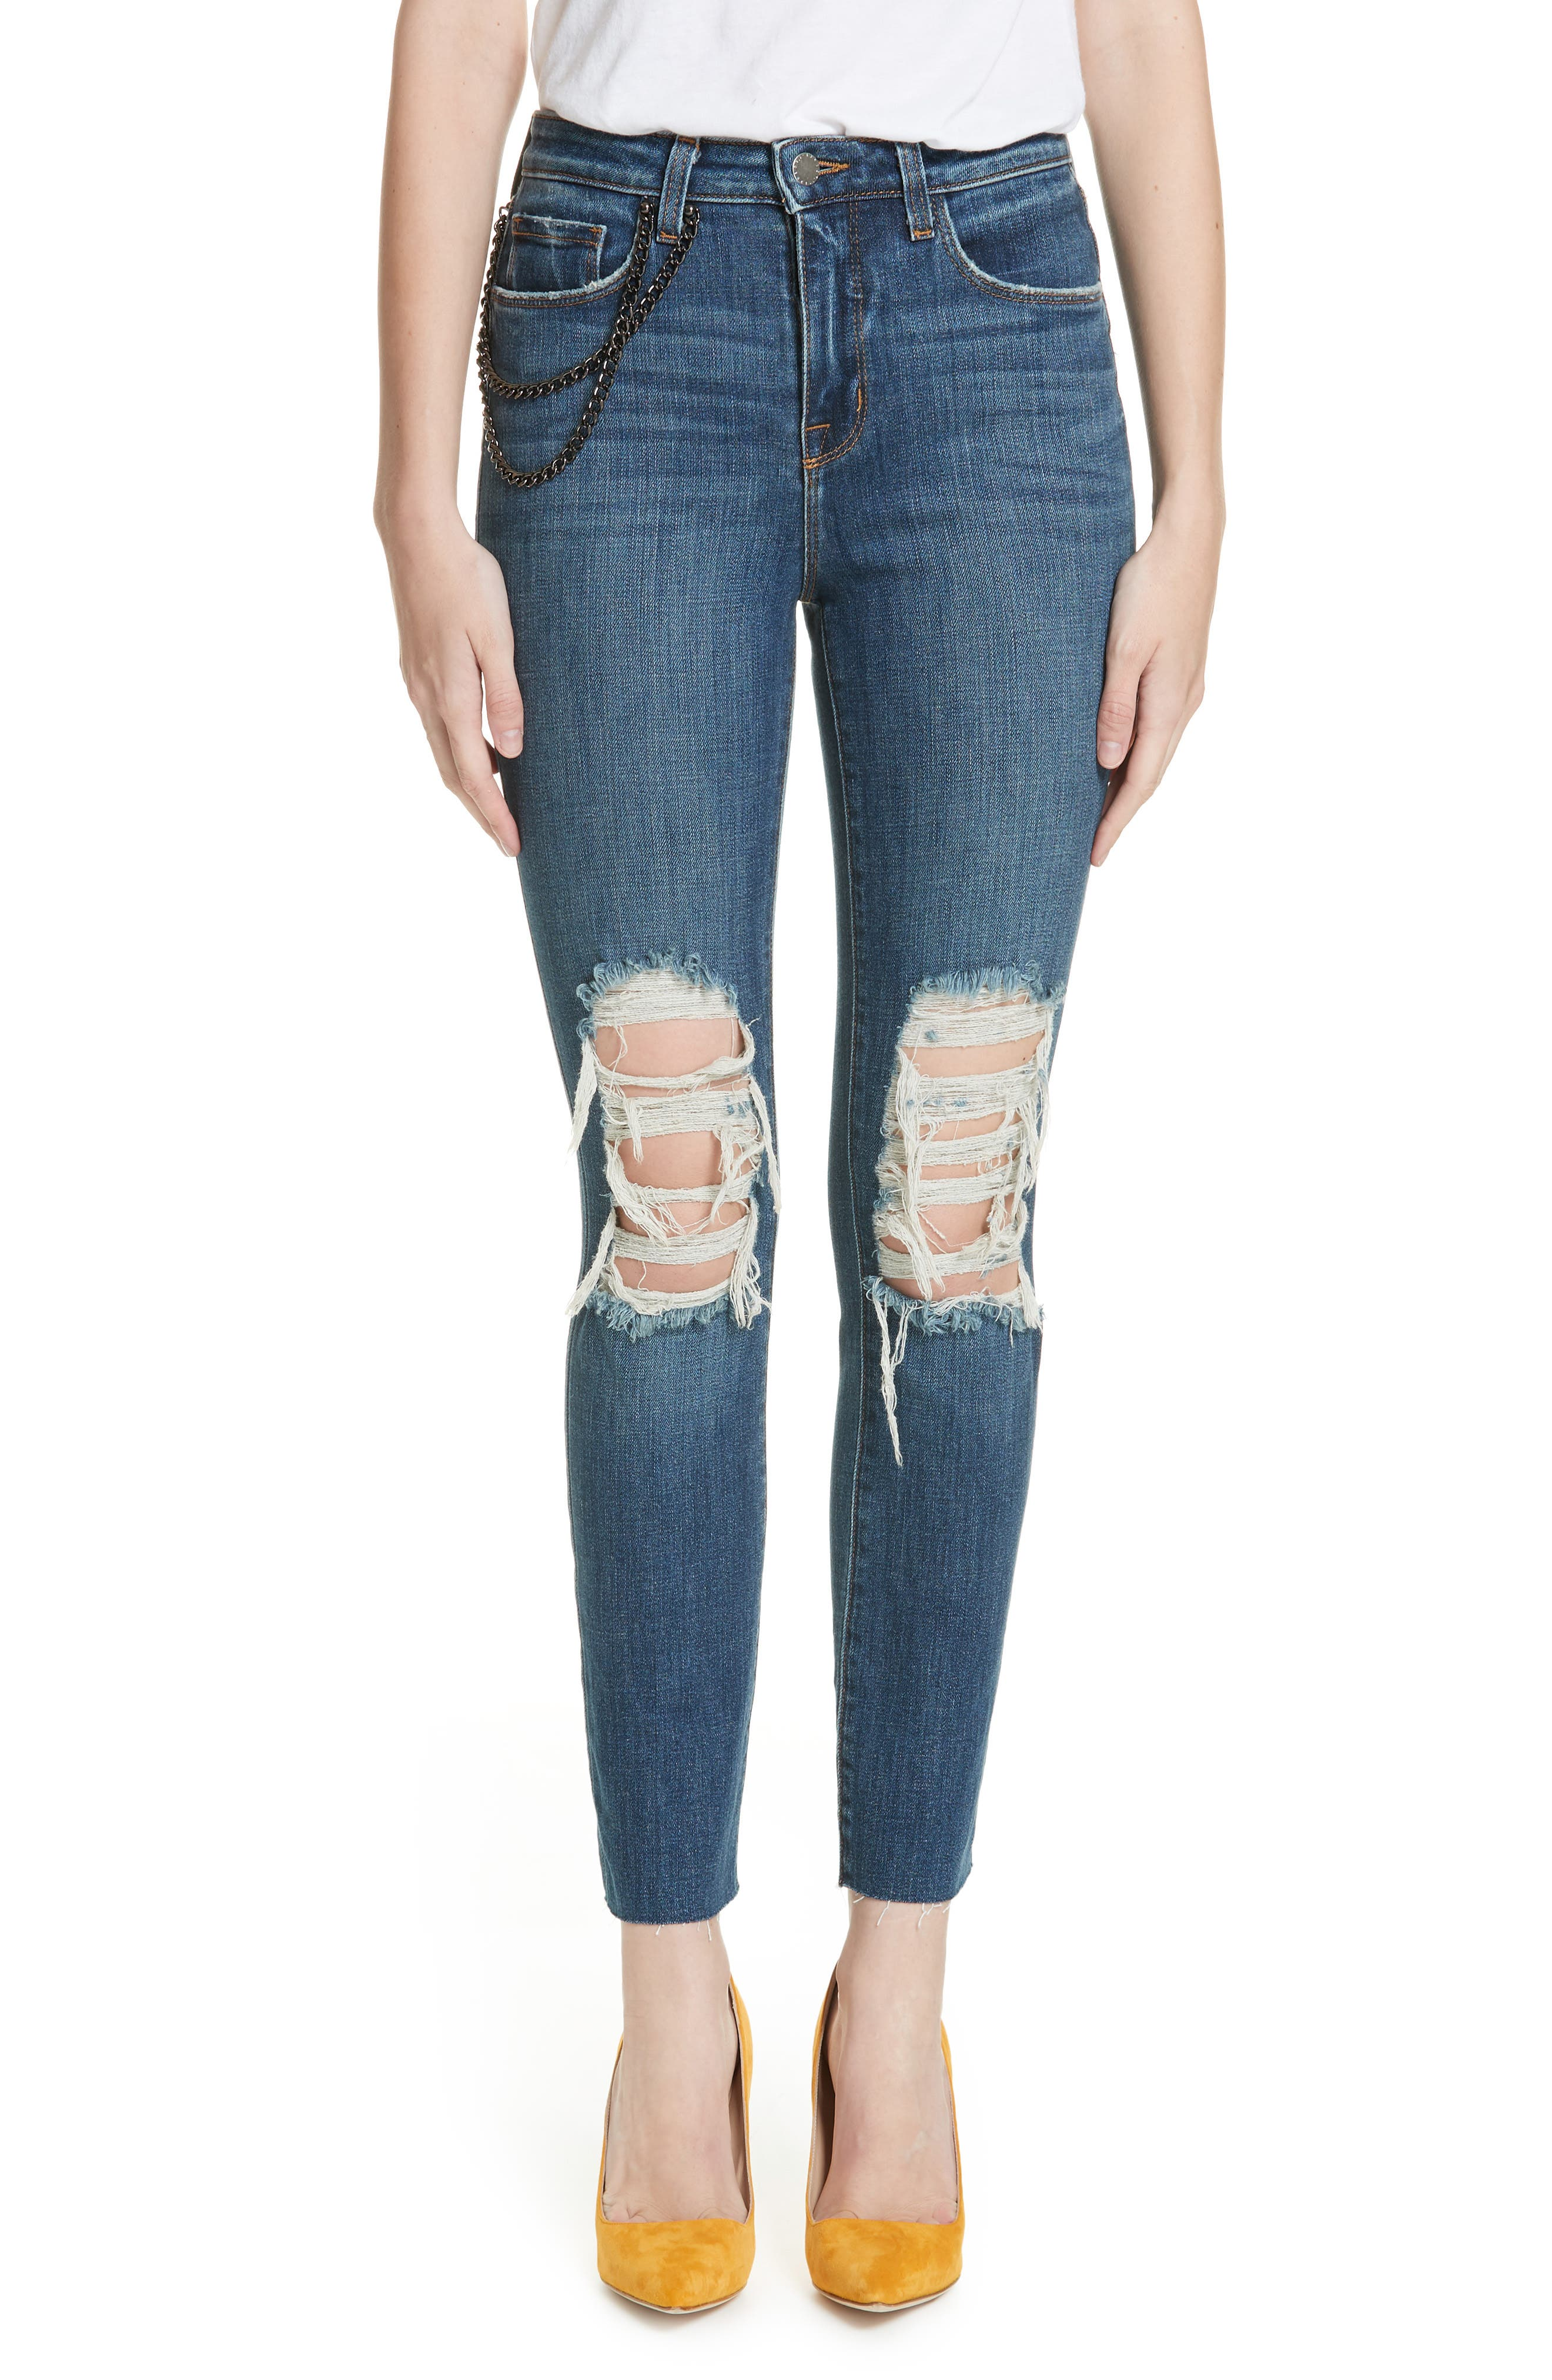 Luna Chain Detail Ripped Skinny Jeans,                             Main thumbnail 1, color,                             401